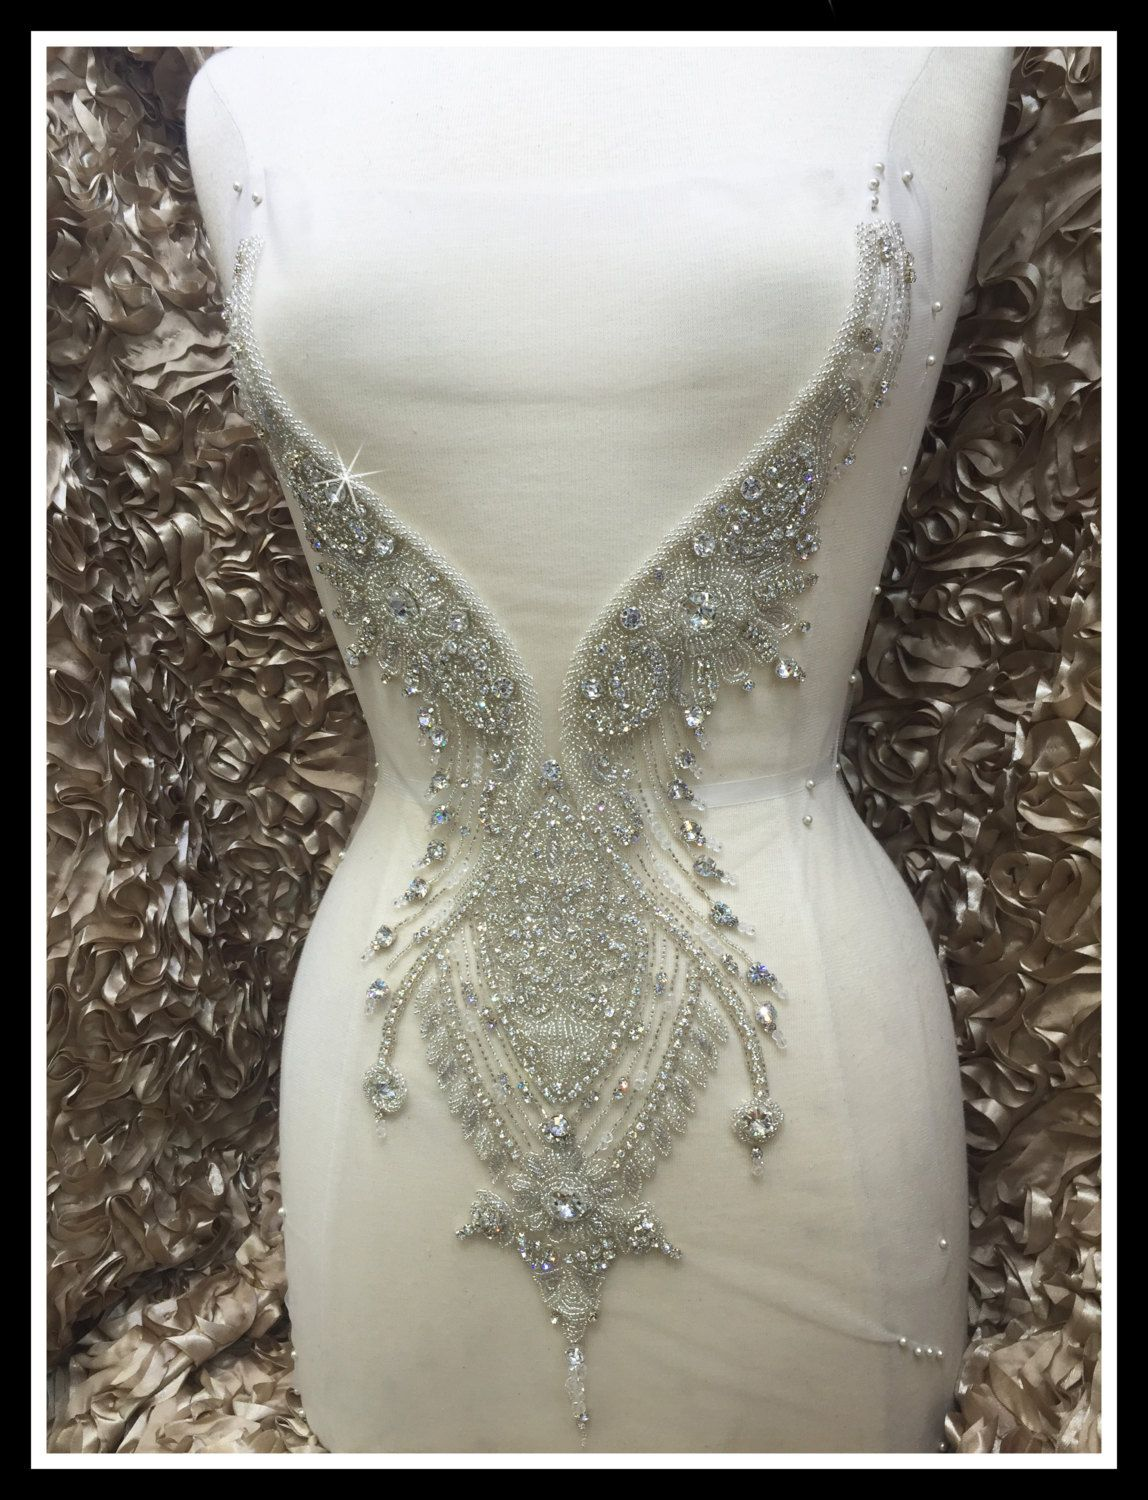 Rhinestone Appliques for Wedding Dresses - Best Dresses for Wedding Check more at http://svesty.com/rhinestone-appliques-for-wedding-dresses/